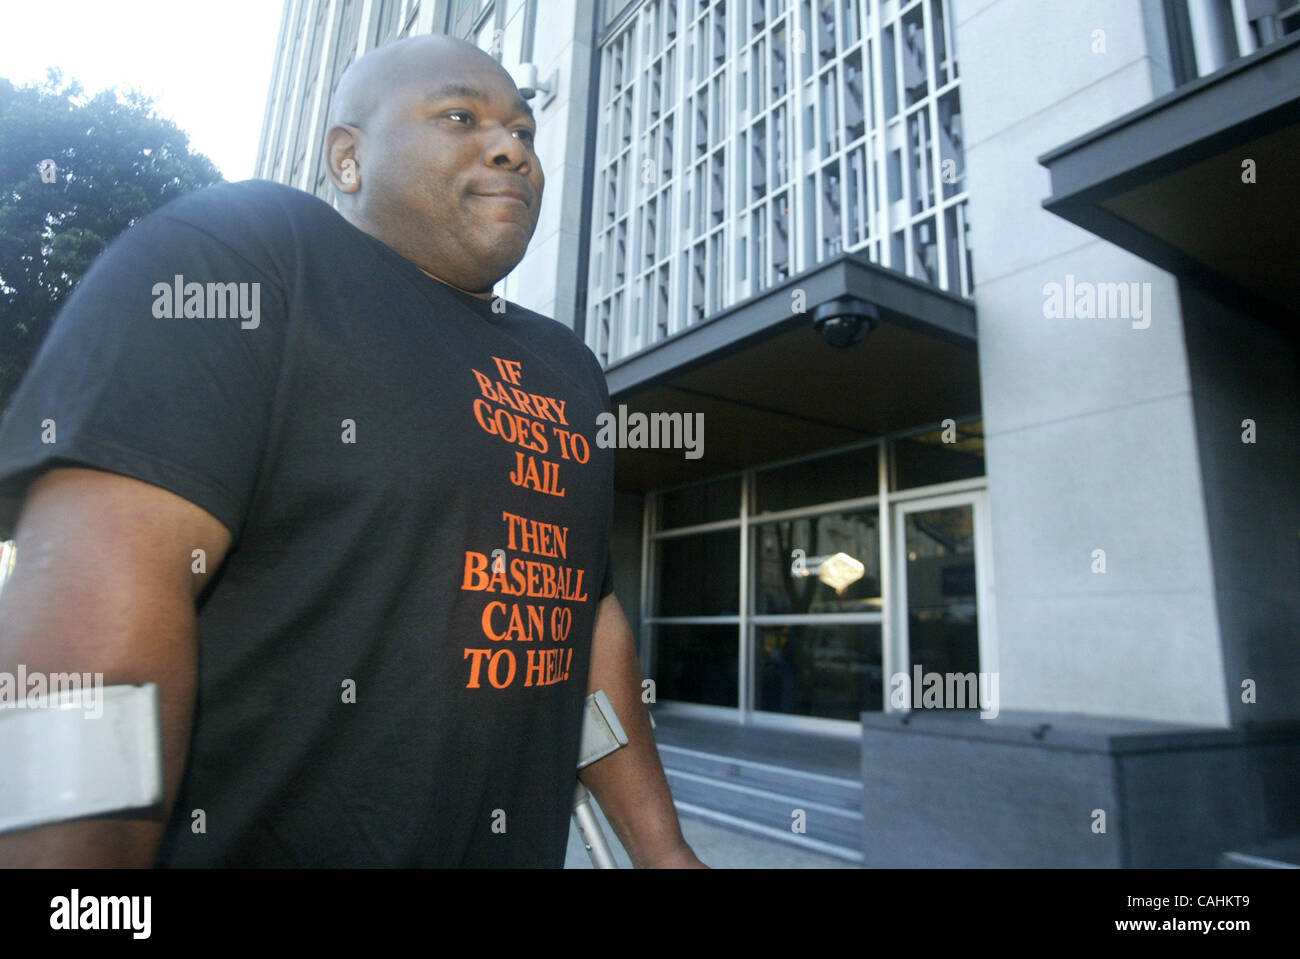 Barry Bonds supporter Allen Jones shows up for the slugger's arraignment on federal perjury charges at the Phillip - Stock Image